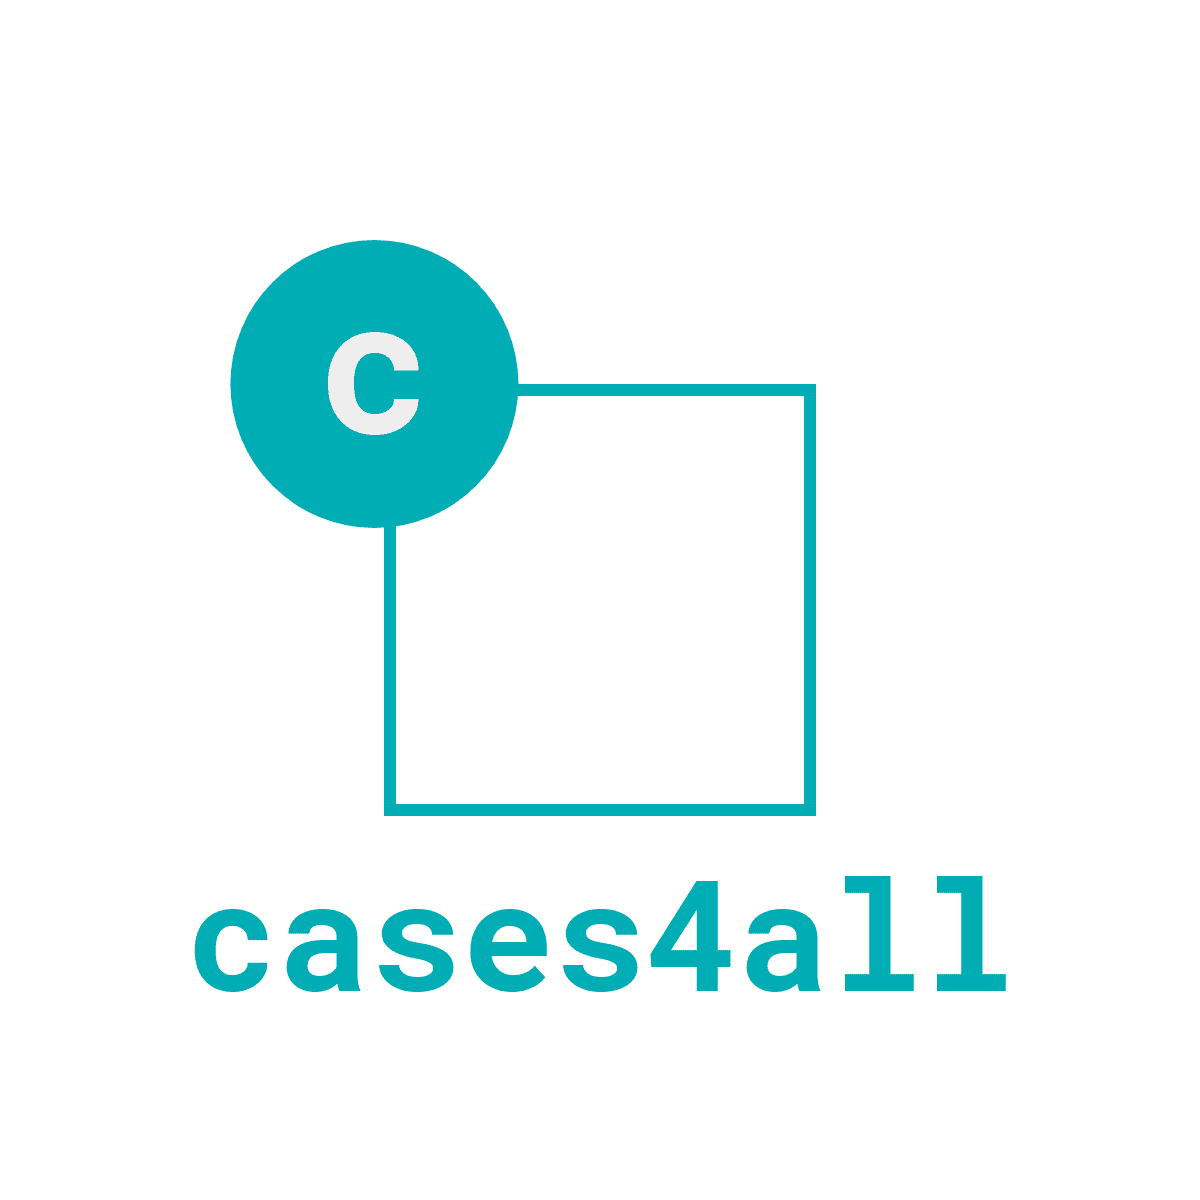 Cases4all